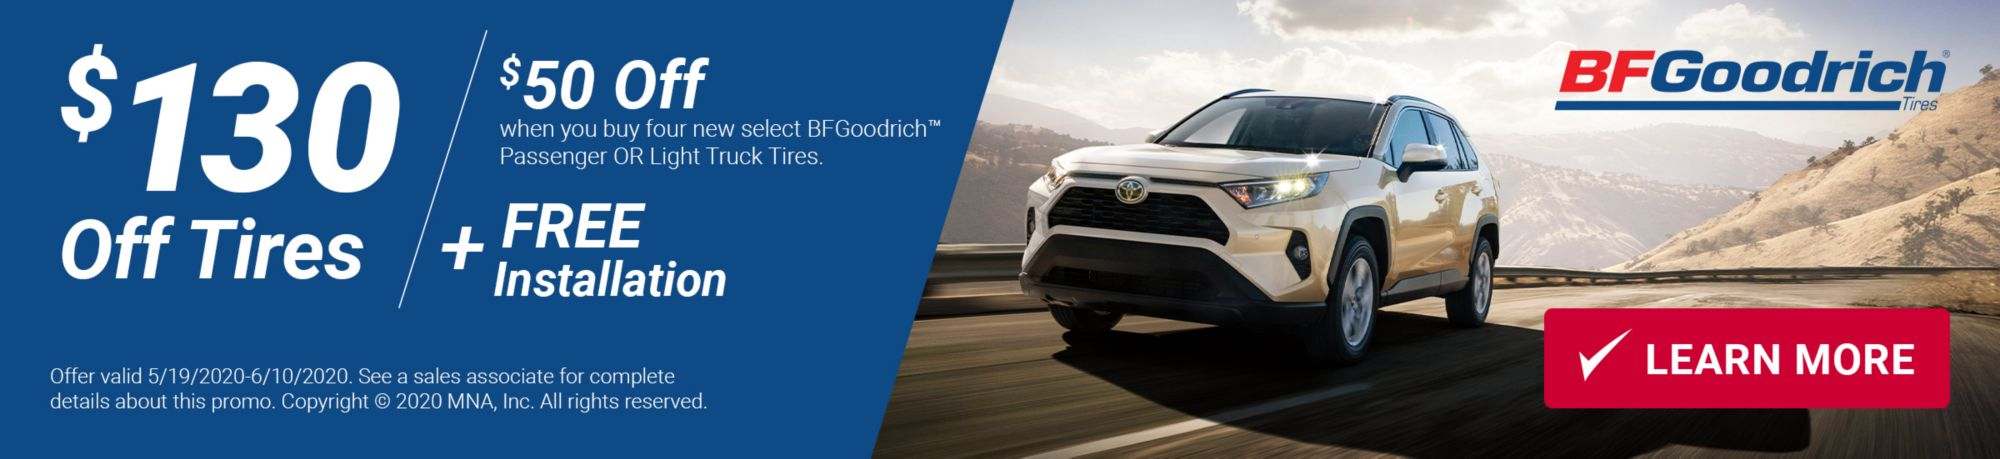 $130 Off Tires. Get $50 off when you buy four new select BFGoodrich Passenger OR Light Truck Tires. Plus FREE Installation ($80 Value). Offer valid May 19 through June 10. Click here to learn more. See a sales associate for complete details about this promo. Copyright 2020 MNA, Inc. All rights reserved.